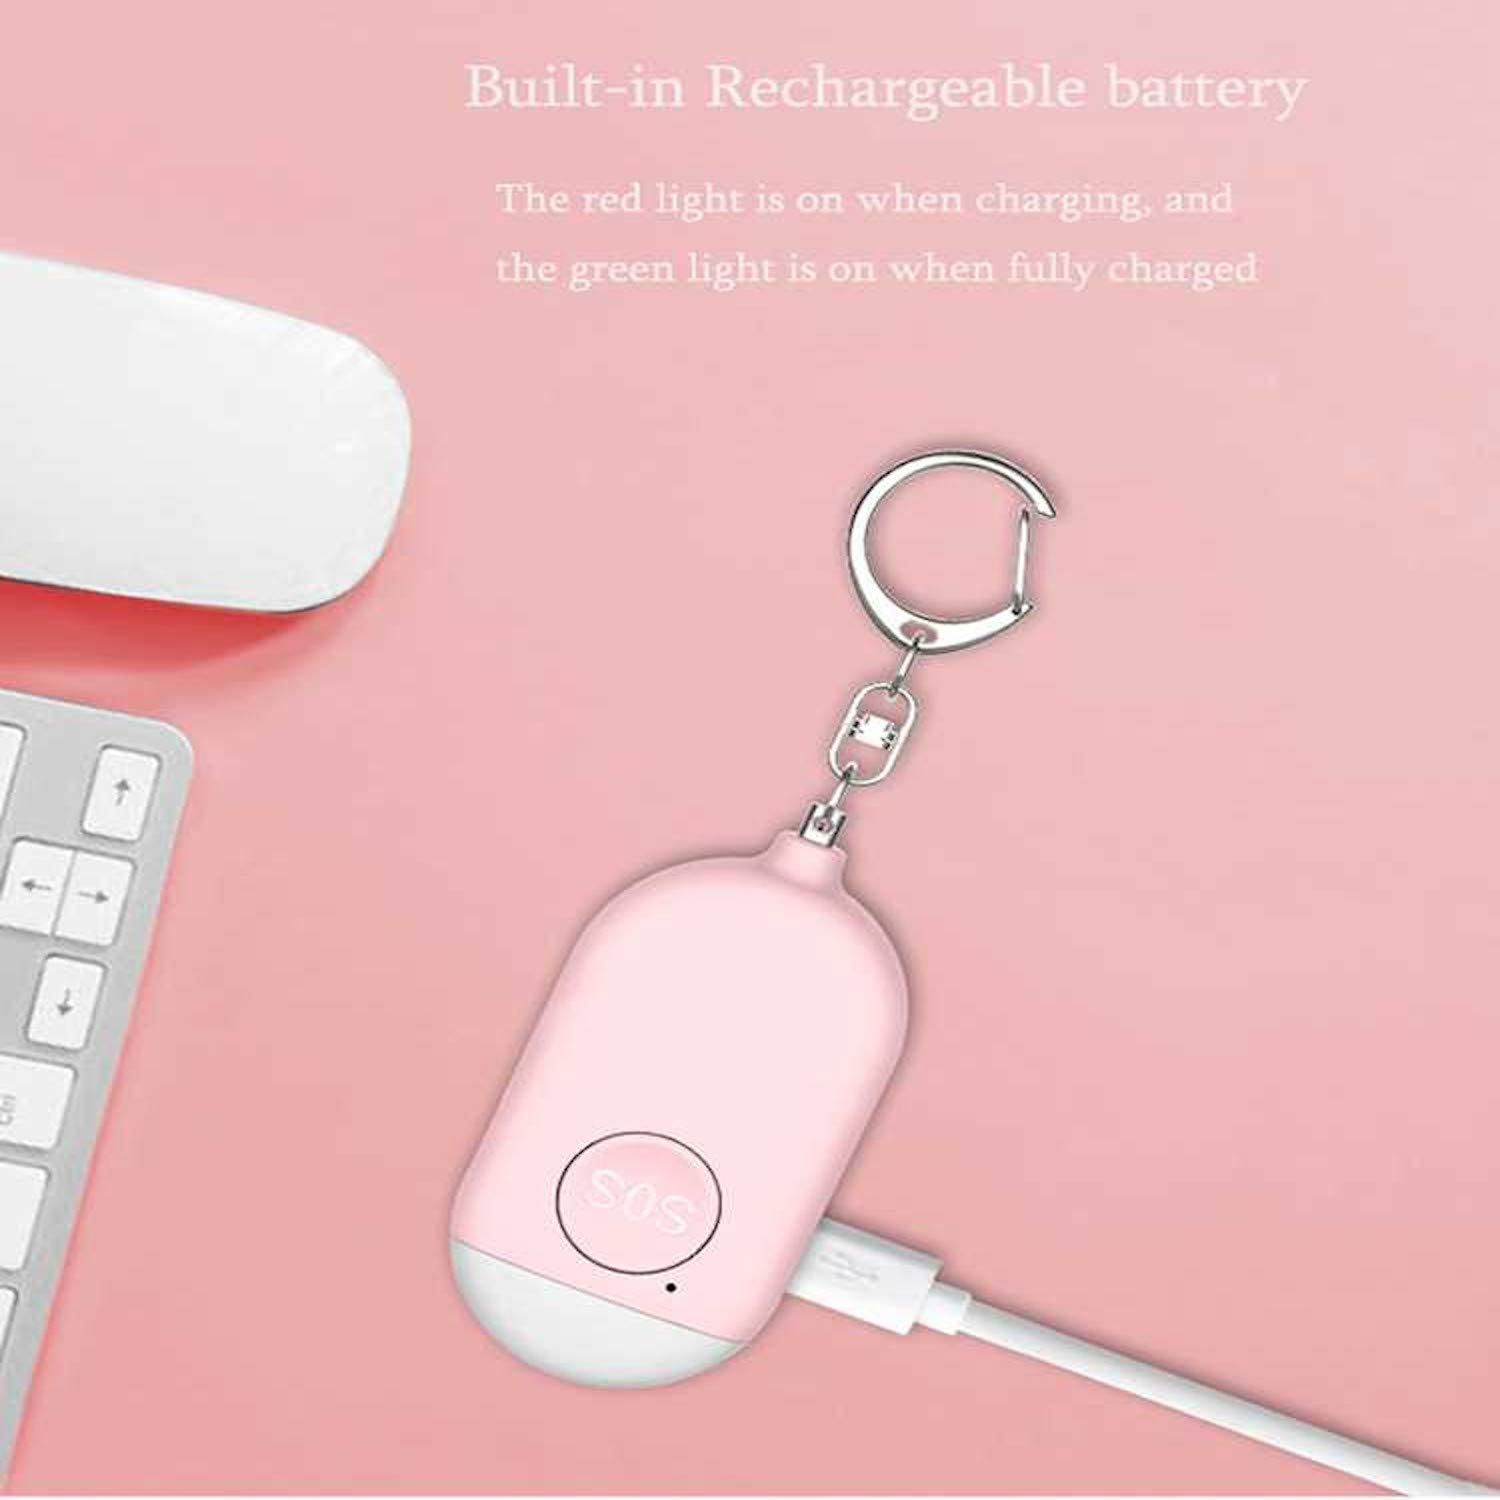 Safe Sound Personal Alarm,Personal Alarm for Women self Defense Alarm 130db USB Rechargeable Key Chain Alarm with LED Light Emergency Safety Personal Alarms for Women,Kids,Men,Seniors